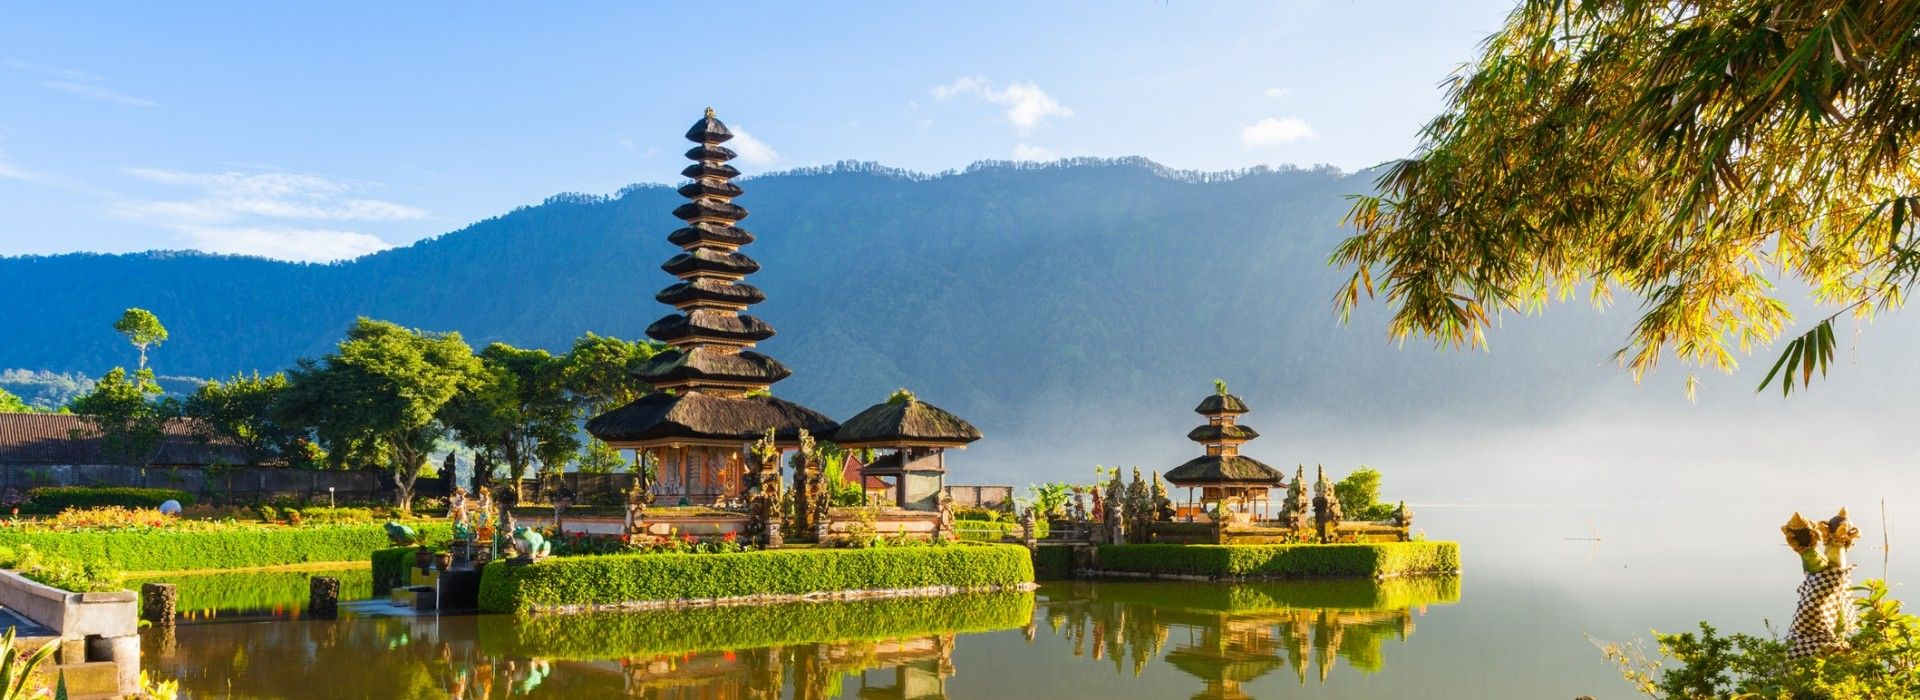 City sightseeing Tours in Bali